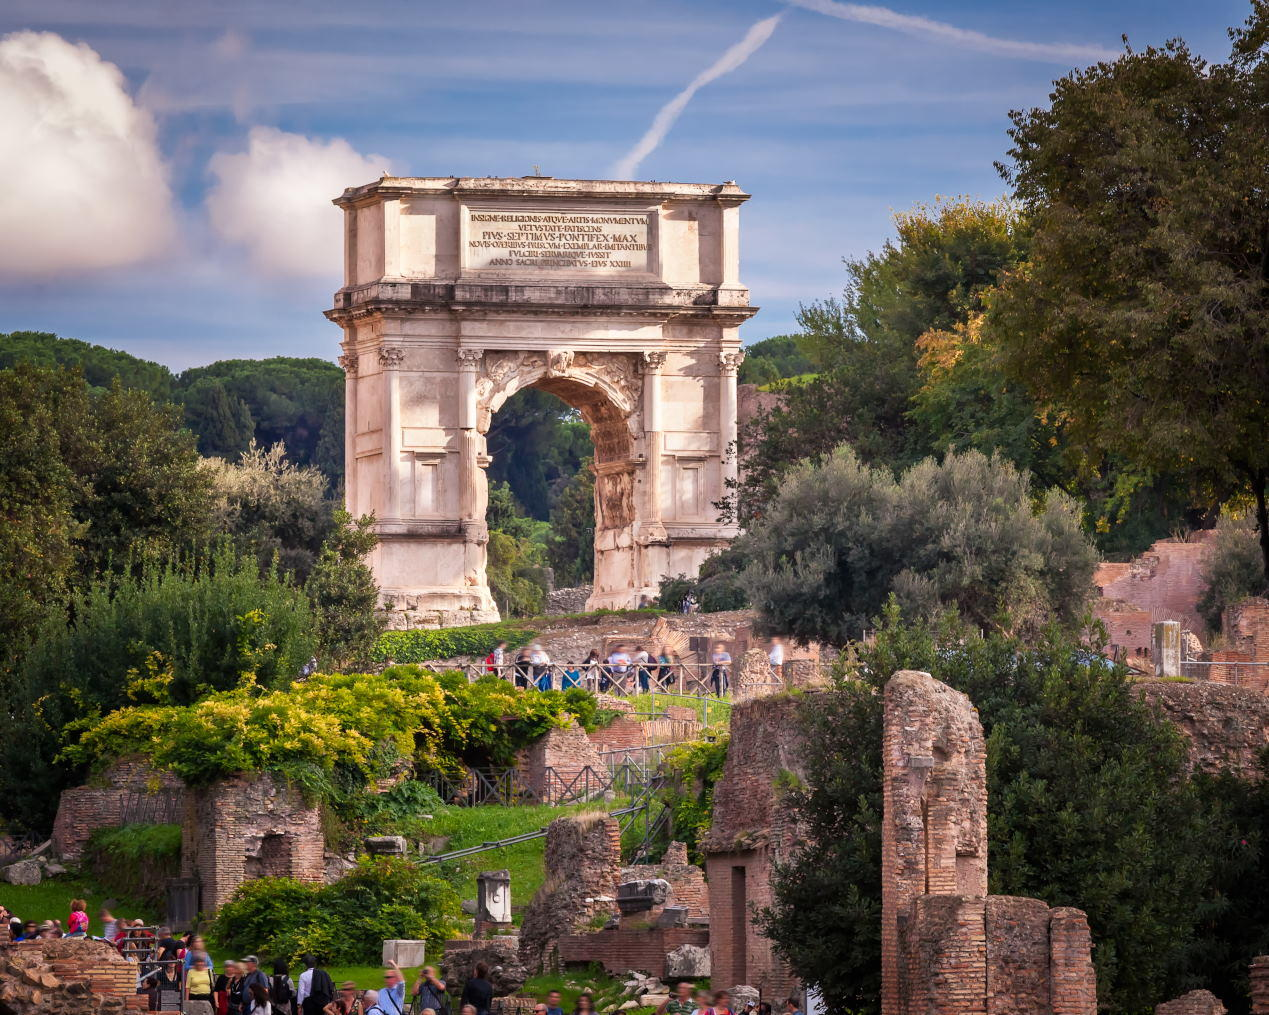 The Arch of Titus in Roman Forum, Rome, Italy